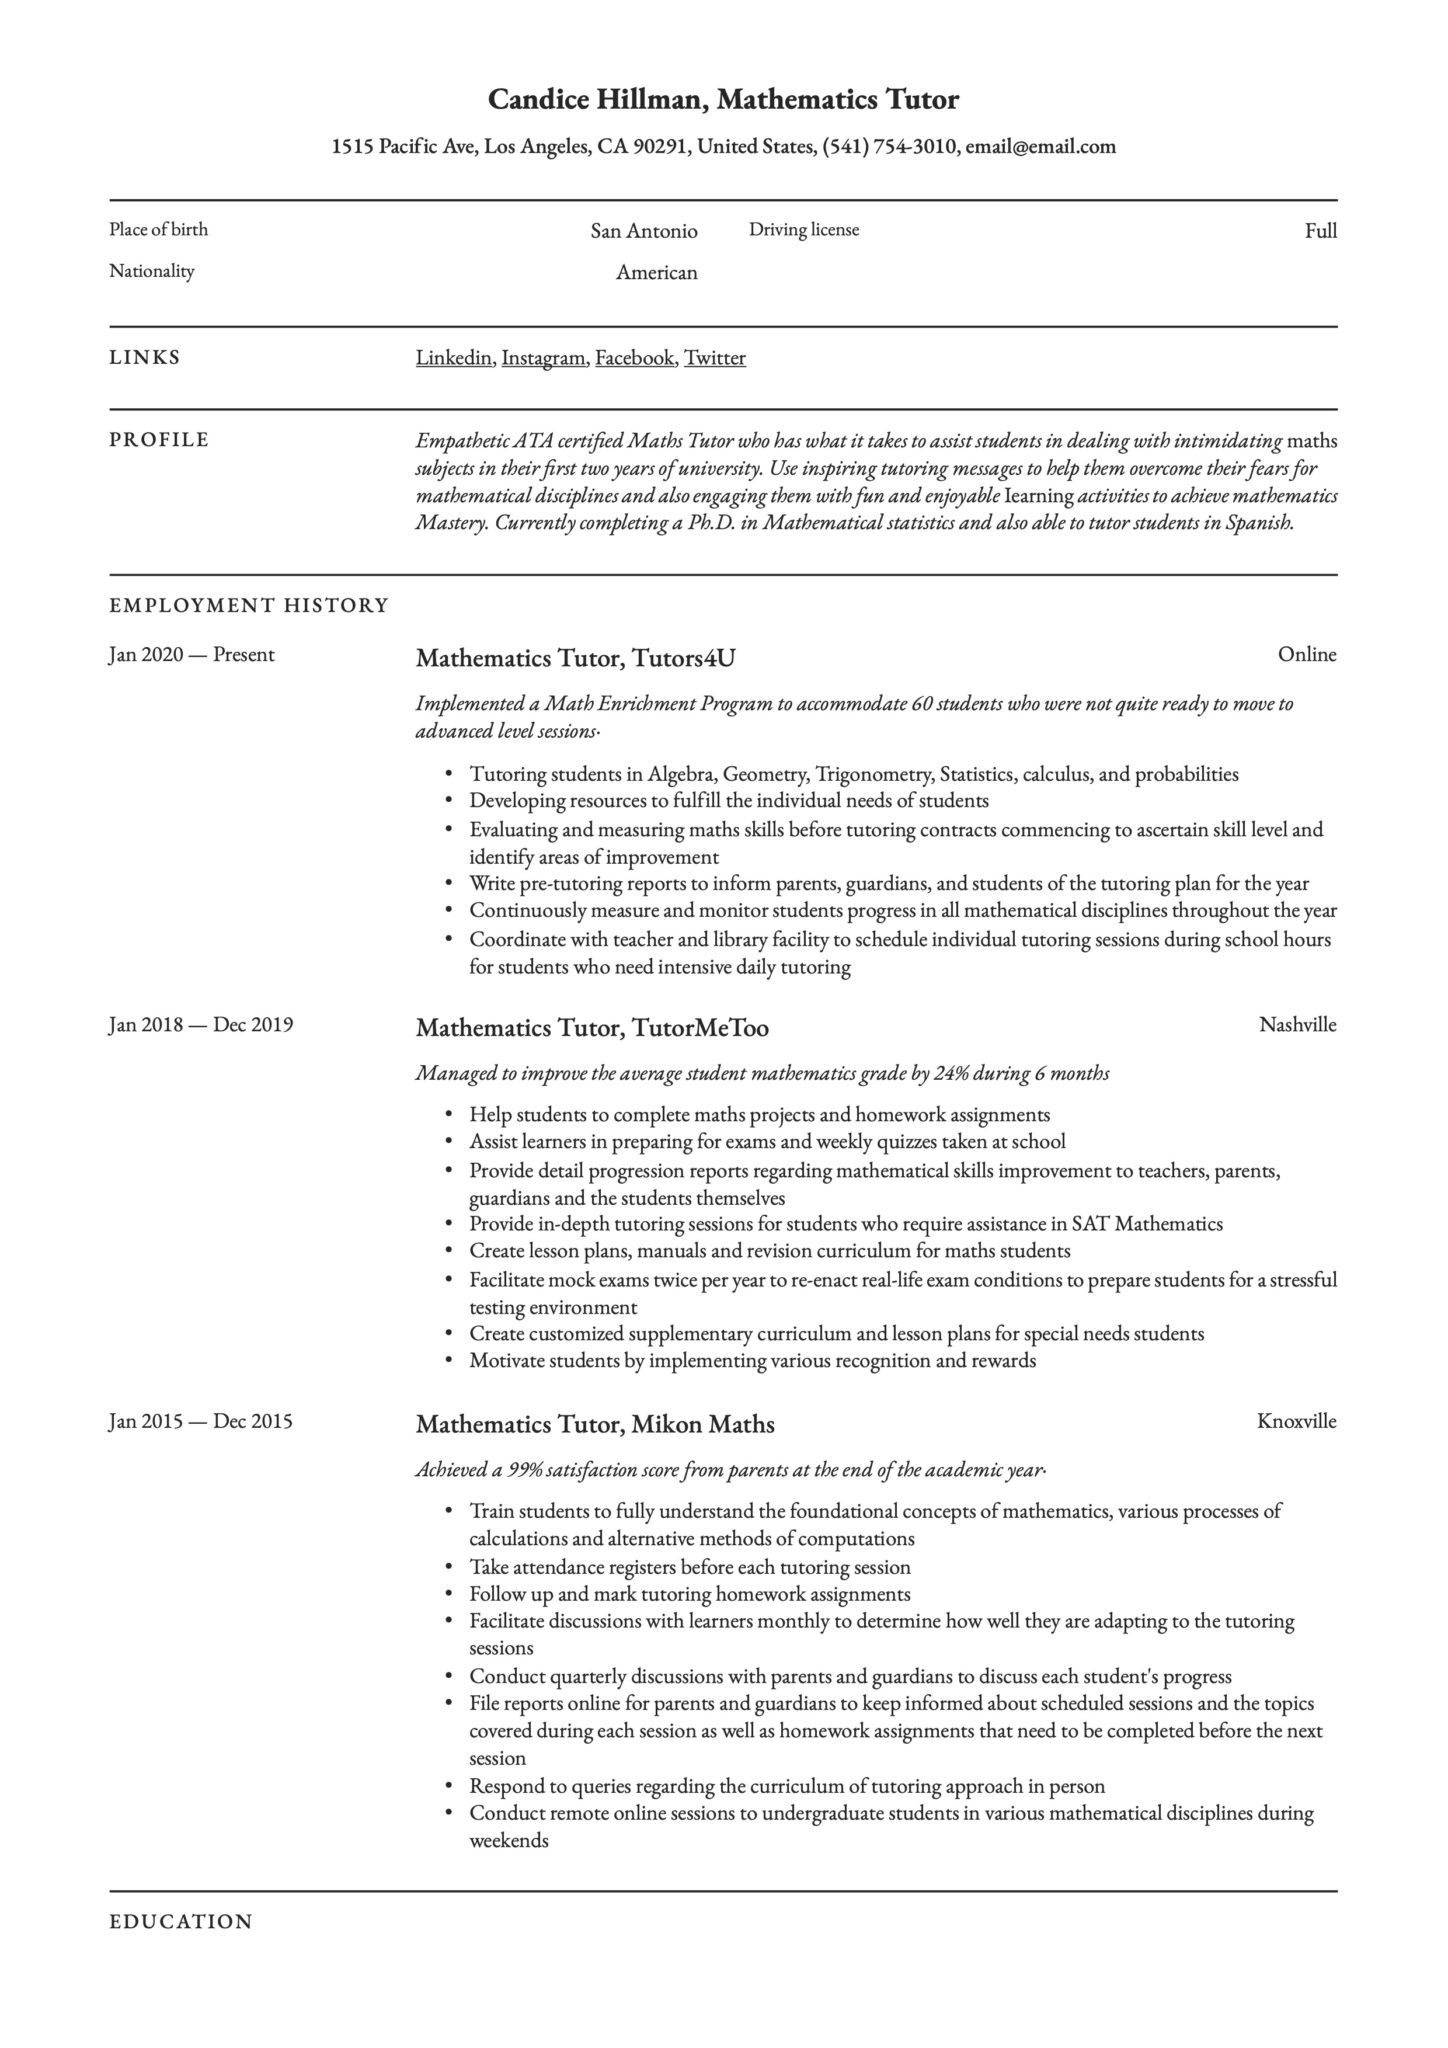 mathematics tutor resume writing guide examples math description scaled qualities and Resume Math Tutor Description Resume